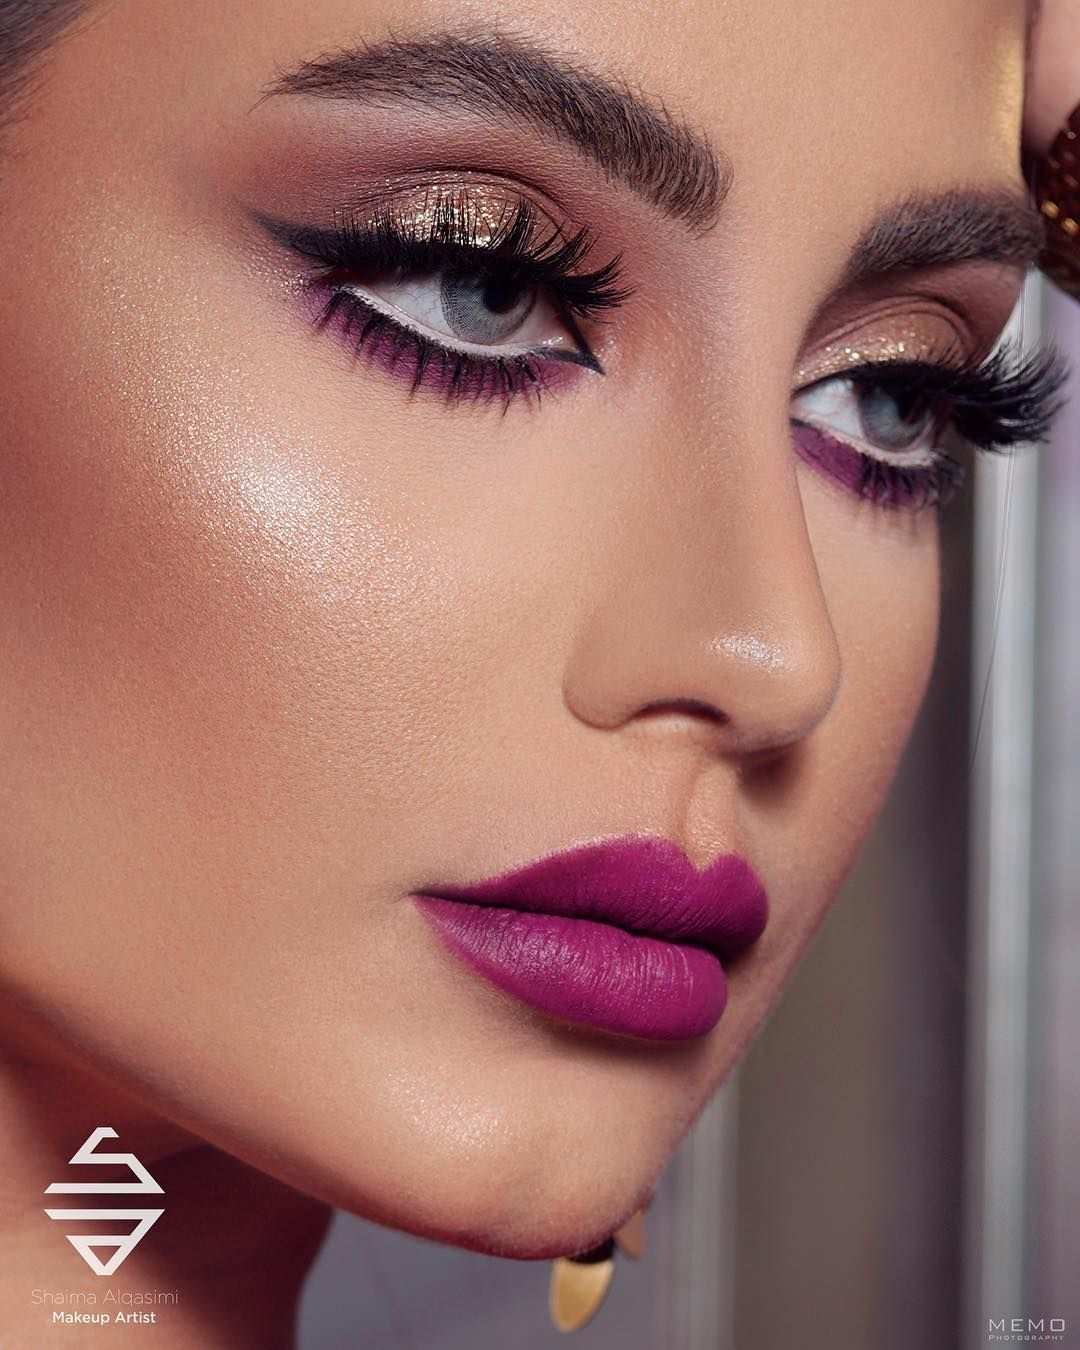 يا ربي ع الجمااااااااااااااال شرايكم Shaima Alqasimi Makeup Lady Rebecca8 Memo Elegant Makeup Eye Makeup Soft Eye Makeup